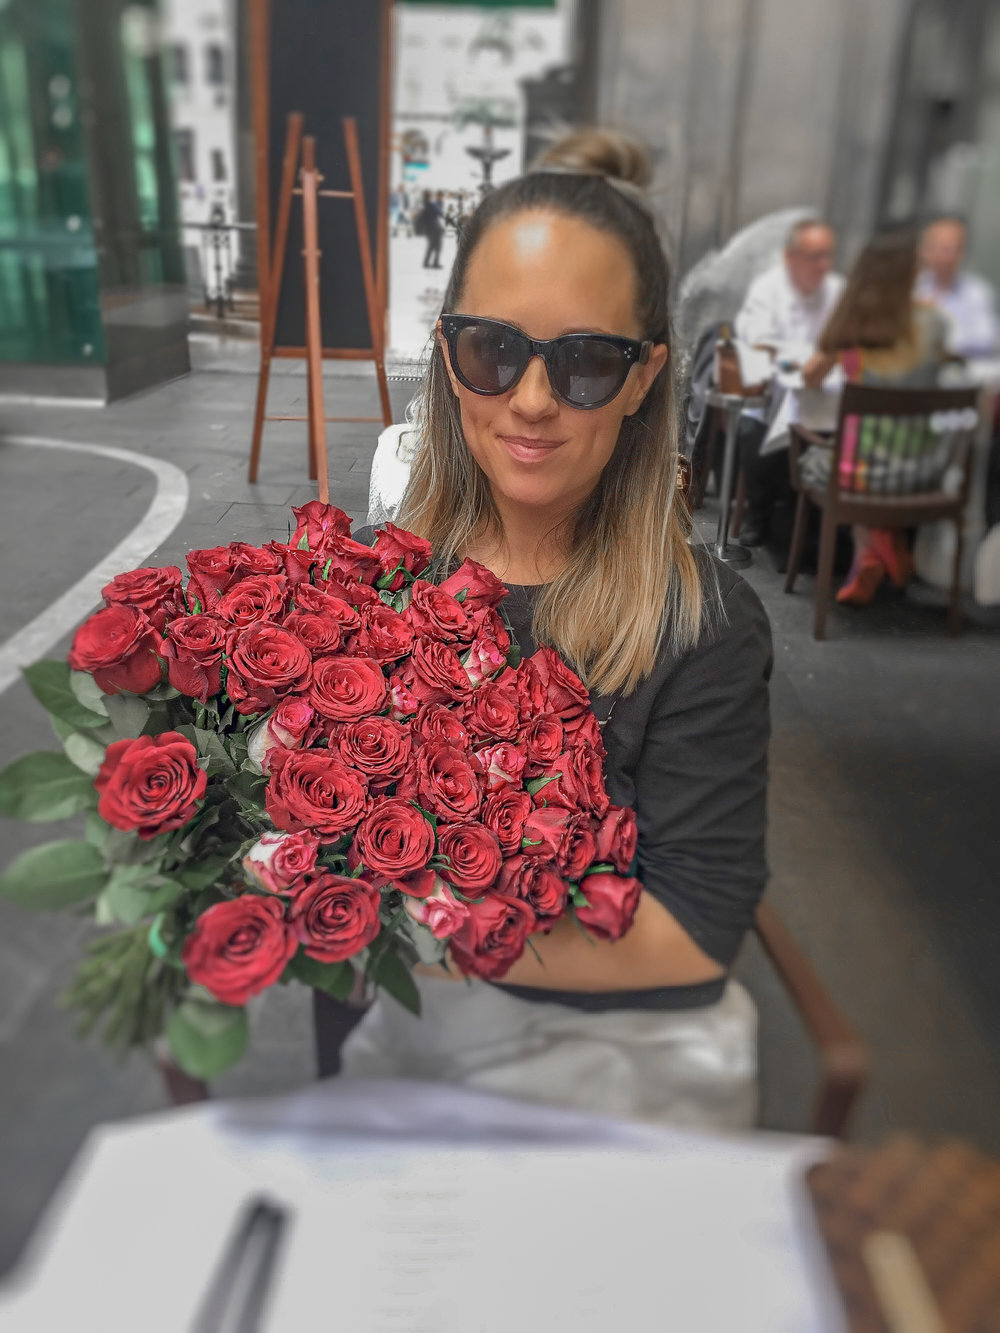 My love got me red roses in Milan lucky love Photo by Linda Haggh.jpg